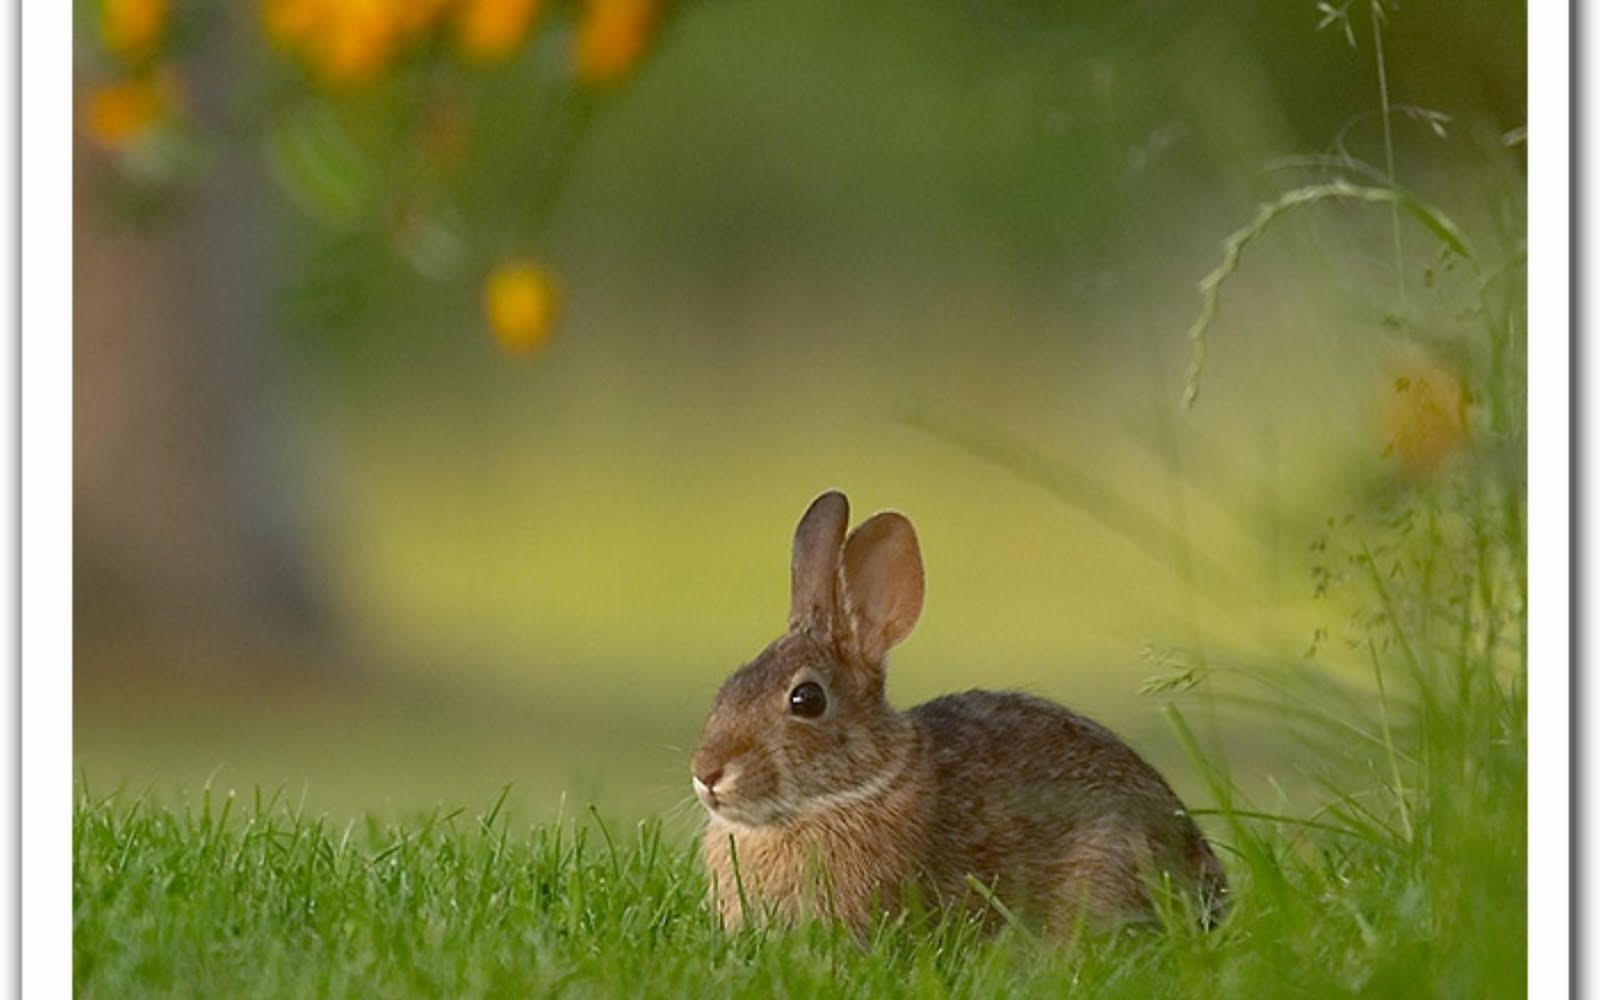 Cute Rabbits Hd Wallpapers Top 33 Beautiful And Cute Rabbit Wallpapers In Hd